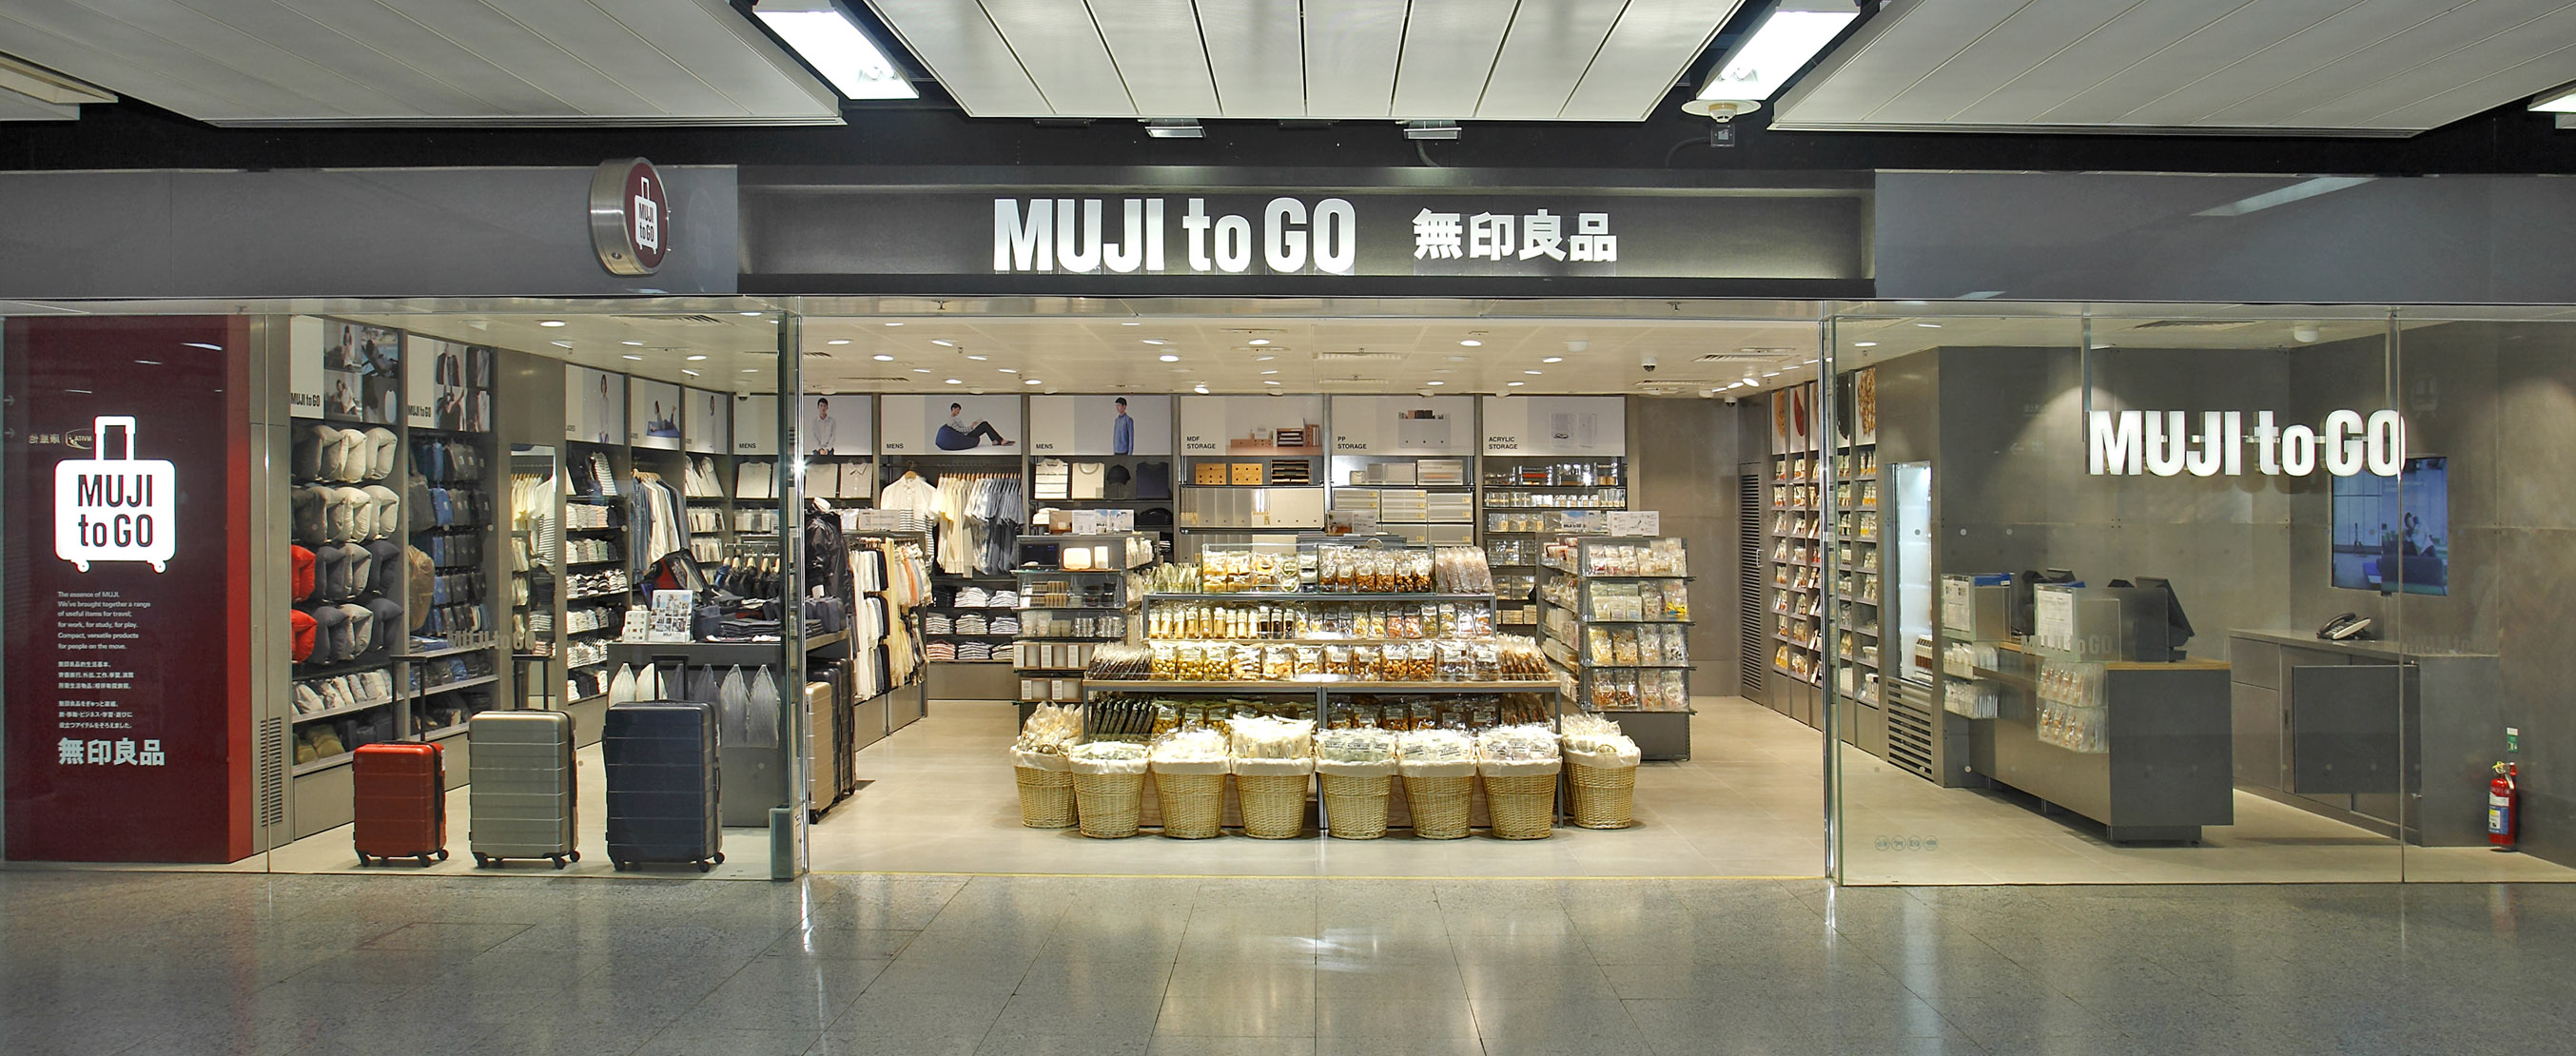 muji to go mtr hong kong station store muji. Black Bedroom Furniture Sets. Home Design Ideas